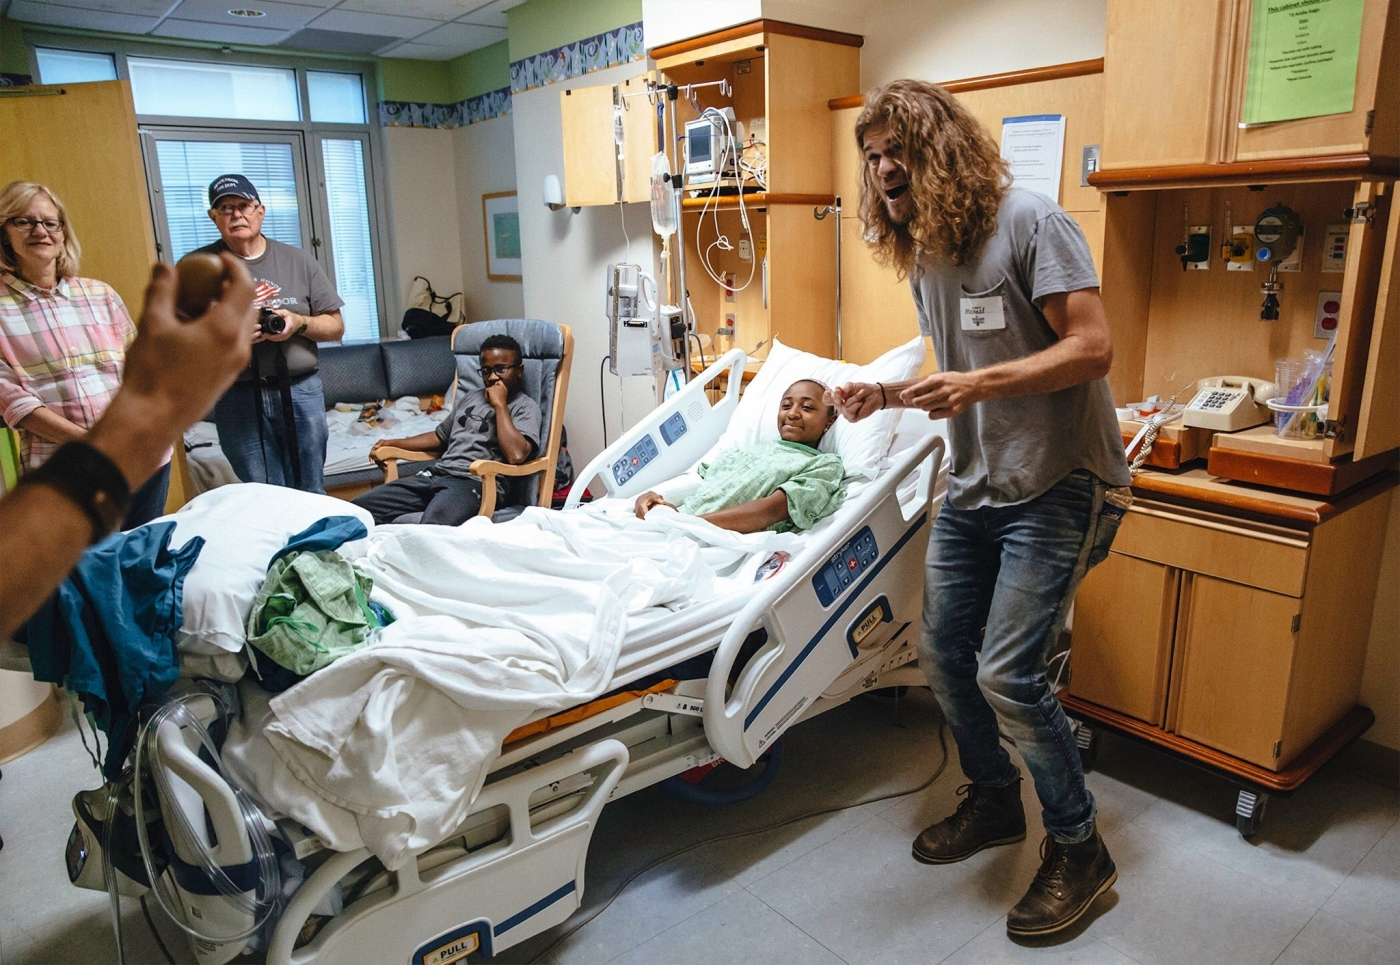 Bringing Live Music S Power To Hospital Rooms